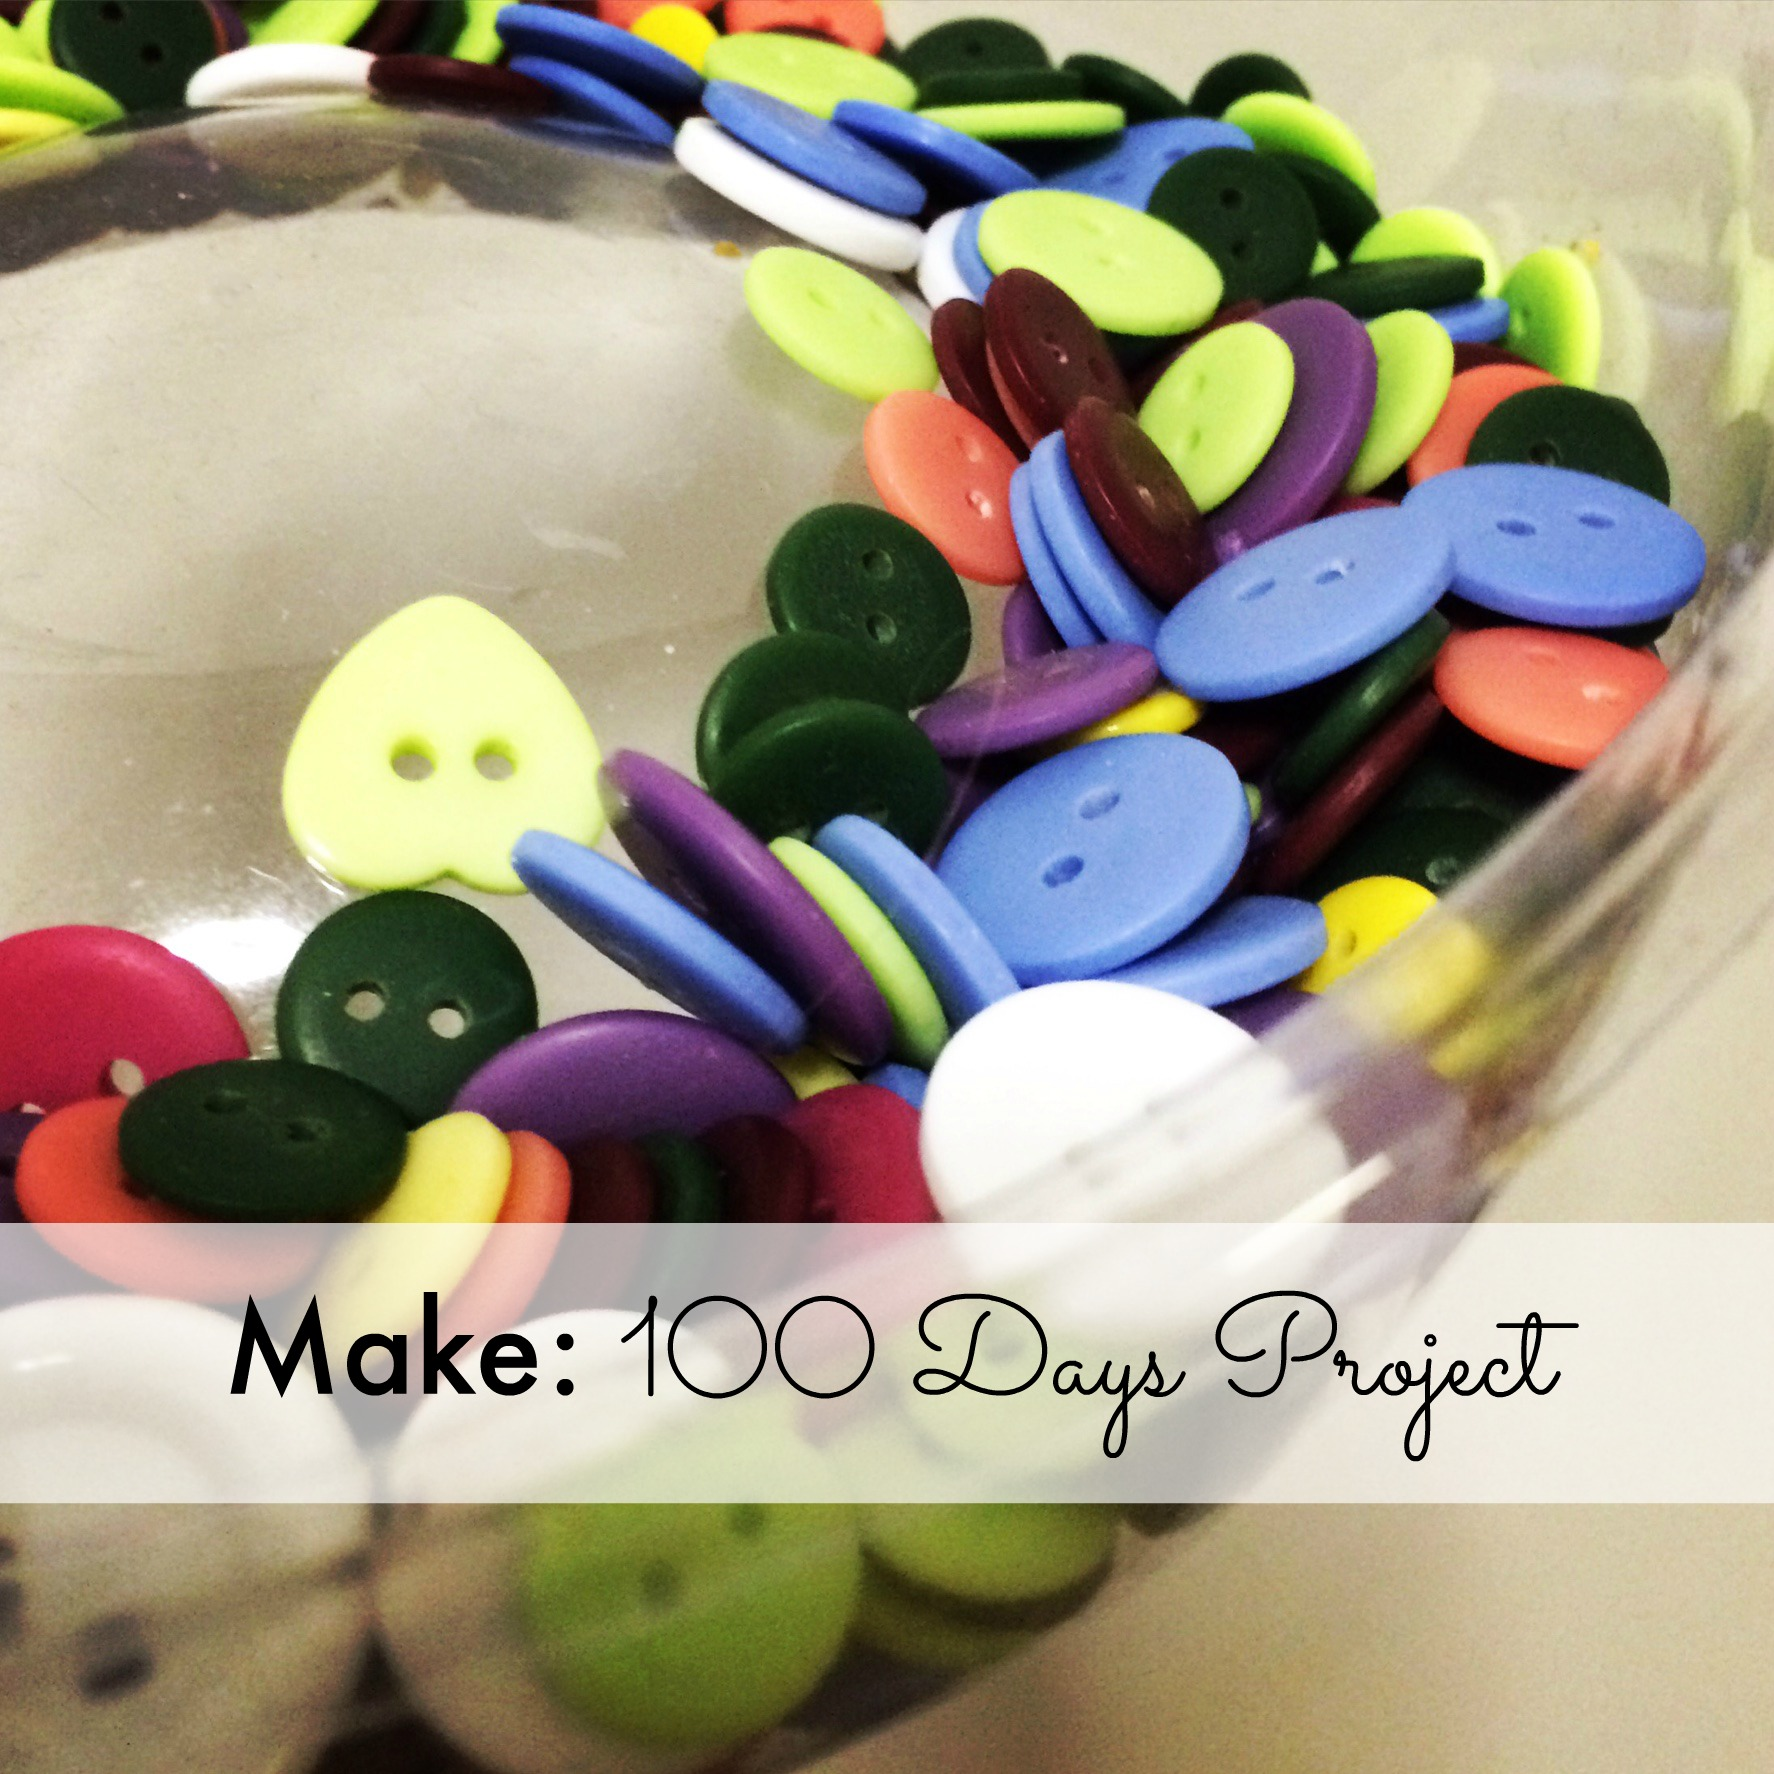 Make: 100 Days Project: 100 buttons with a Skylander theme